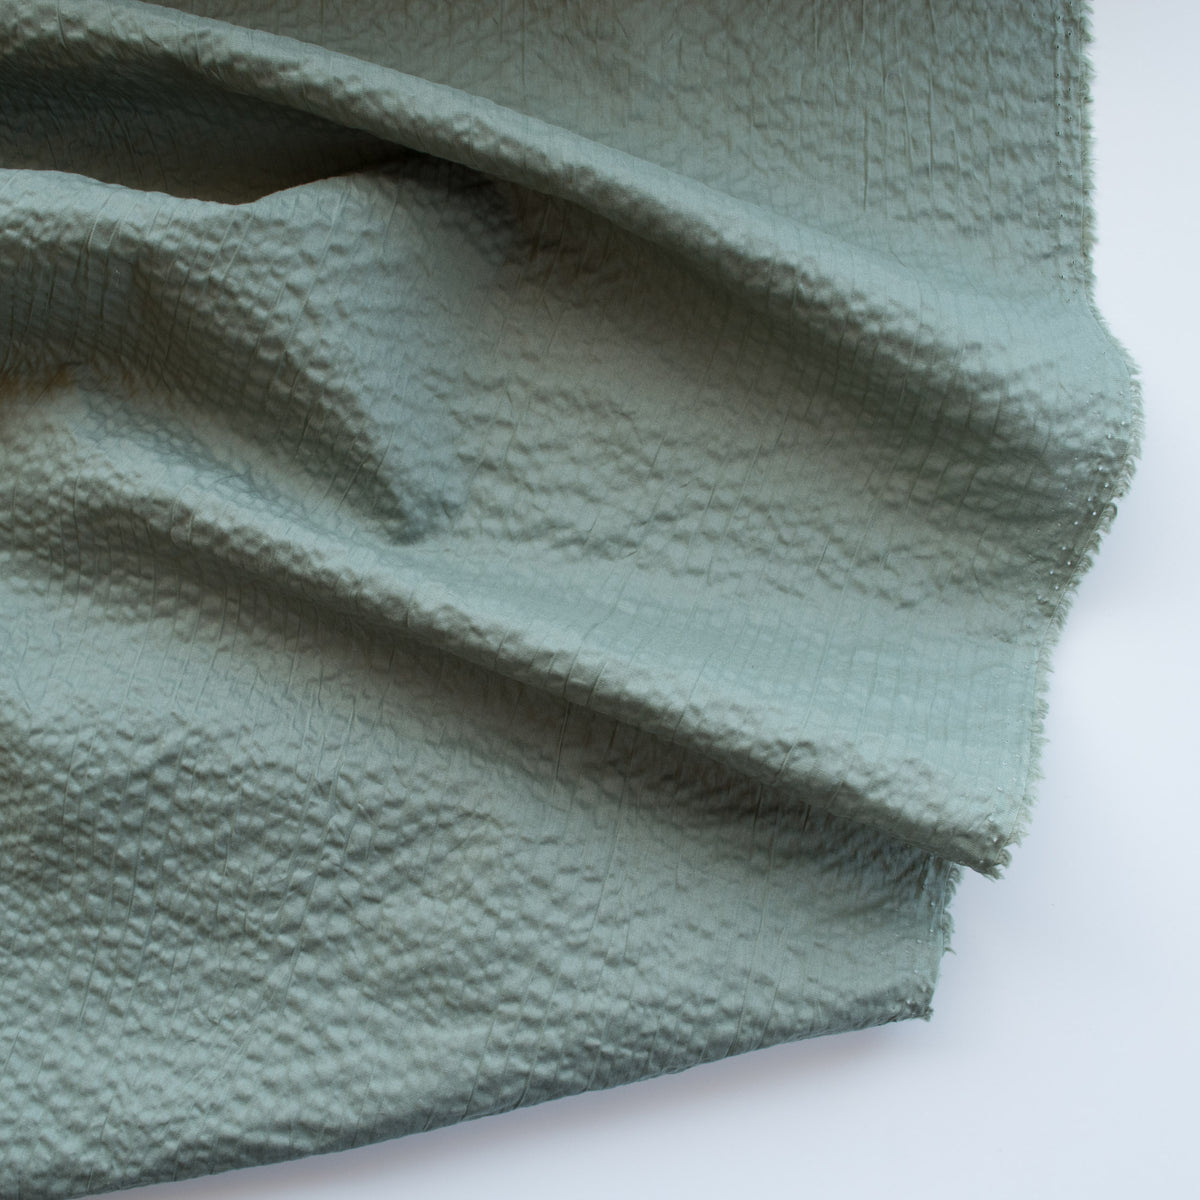 Japanese Crinkle Cotton - Gum Leaf Green - MaaiDesign